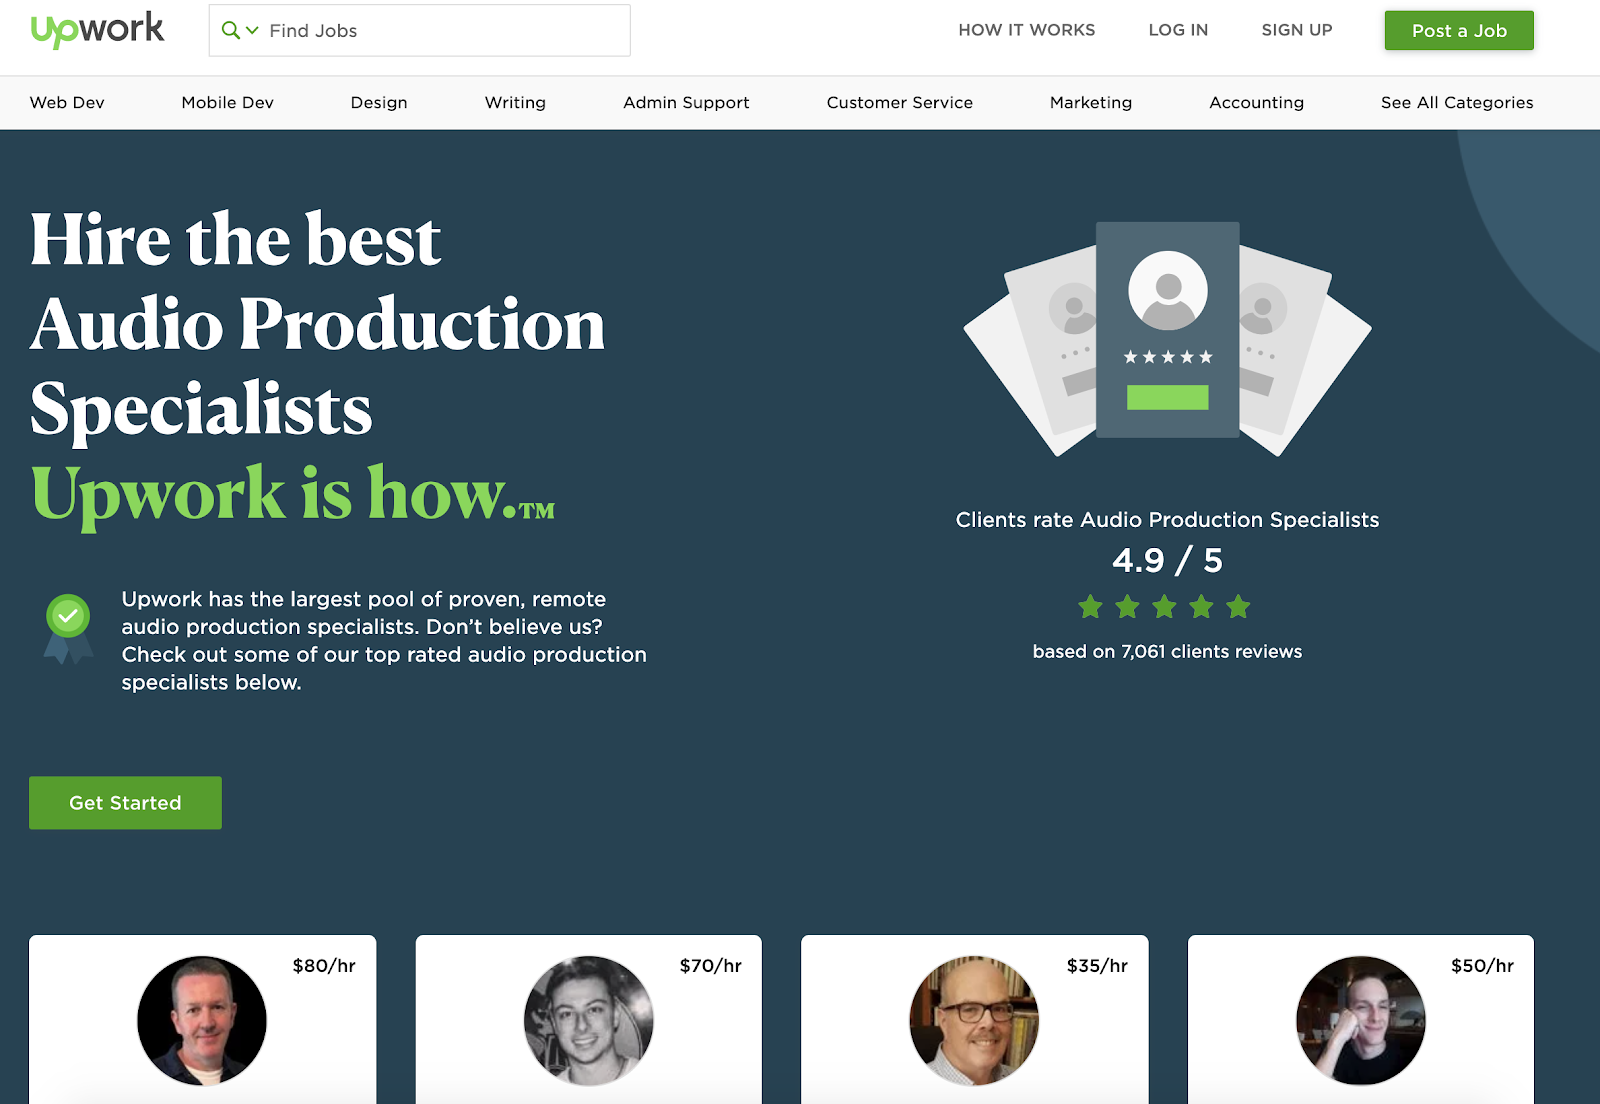 UpWork's top audio production specialists page